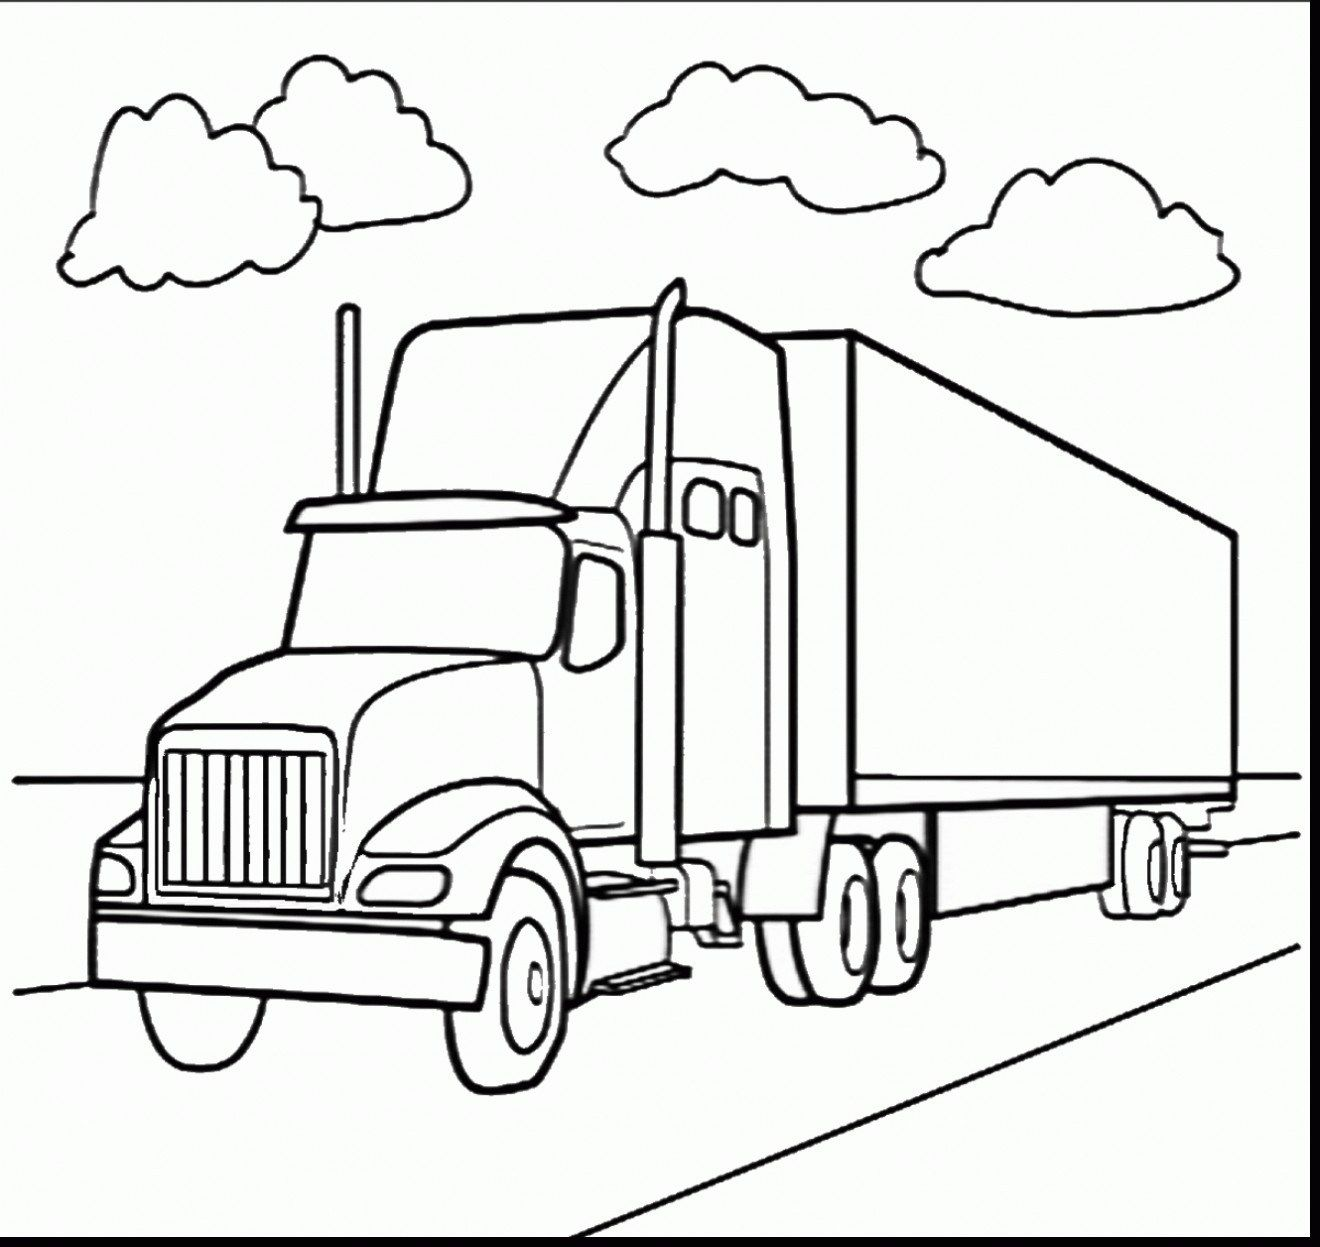 Semi Truck Coloring Pages Mack Coloring Pages At Getdrawings Free